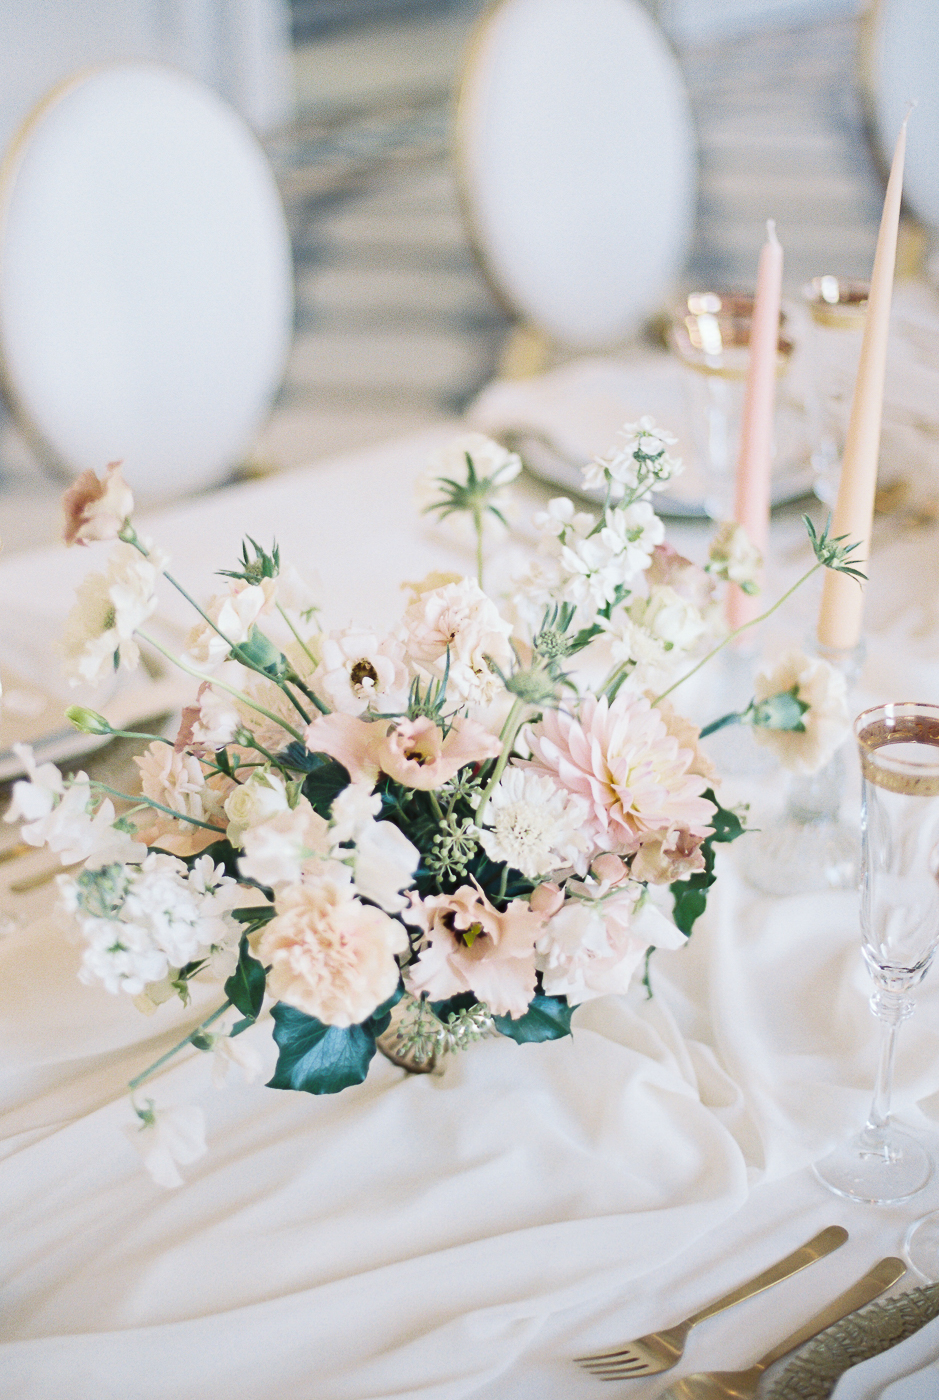 wedding table setting at Compton Verney